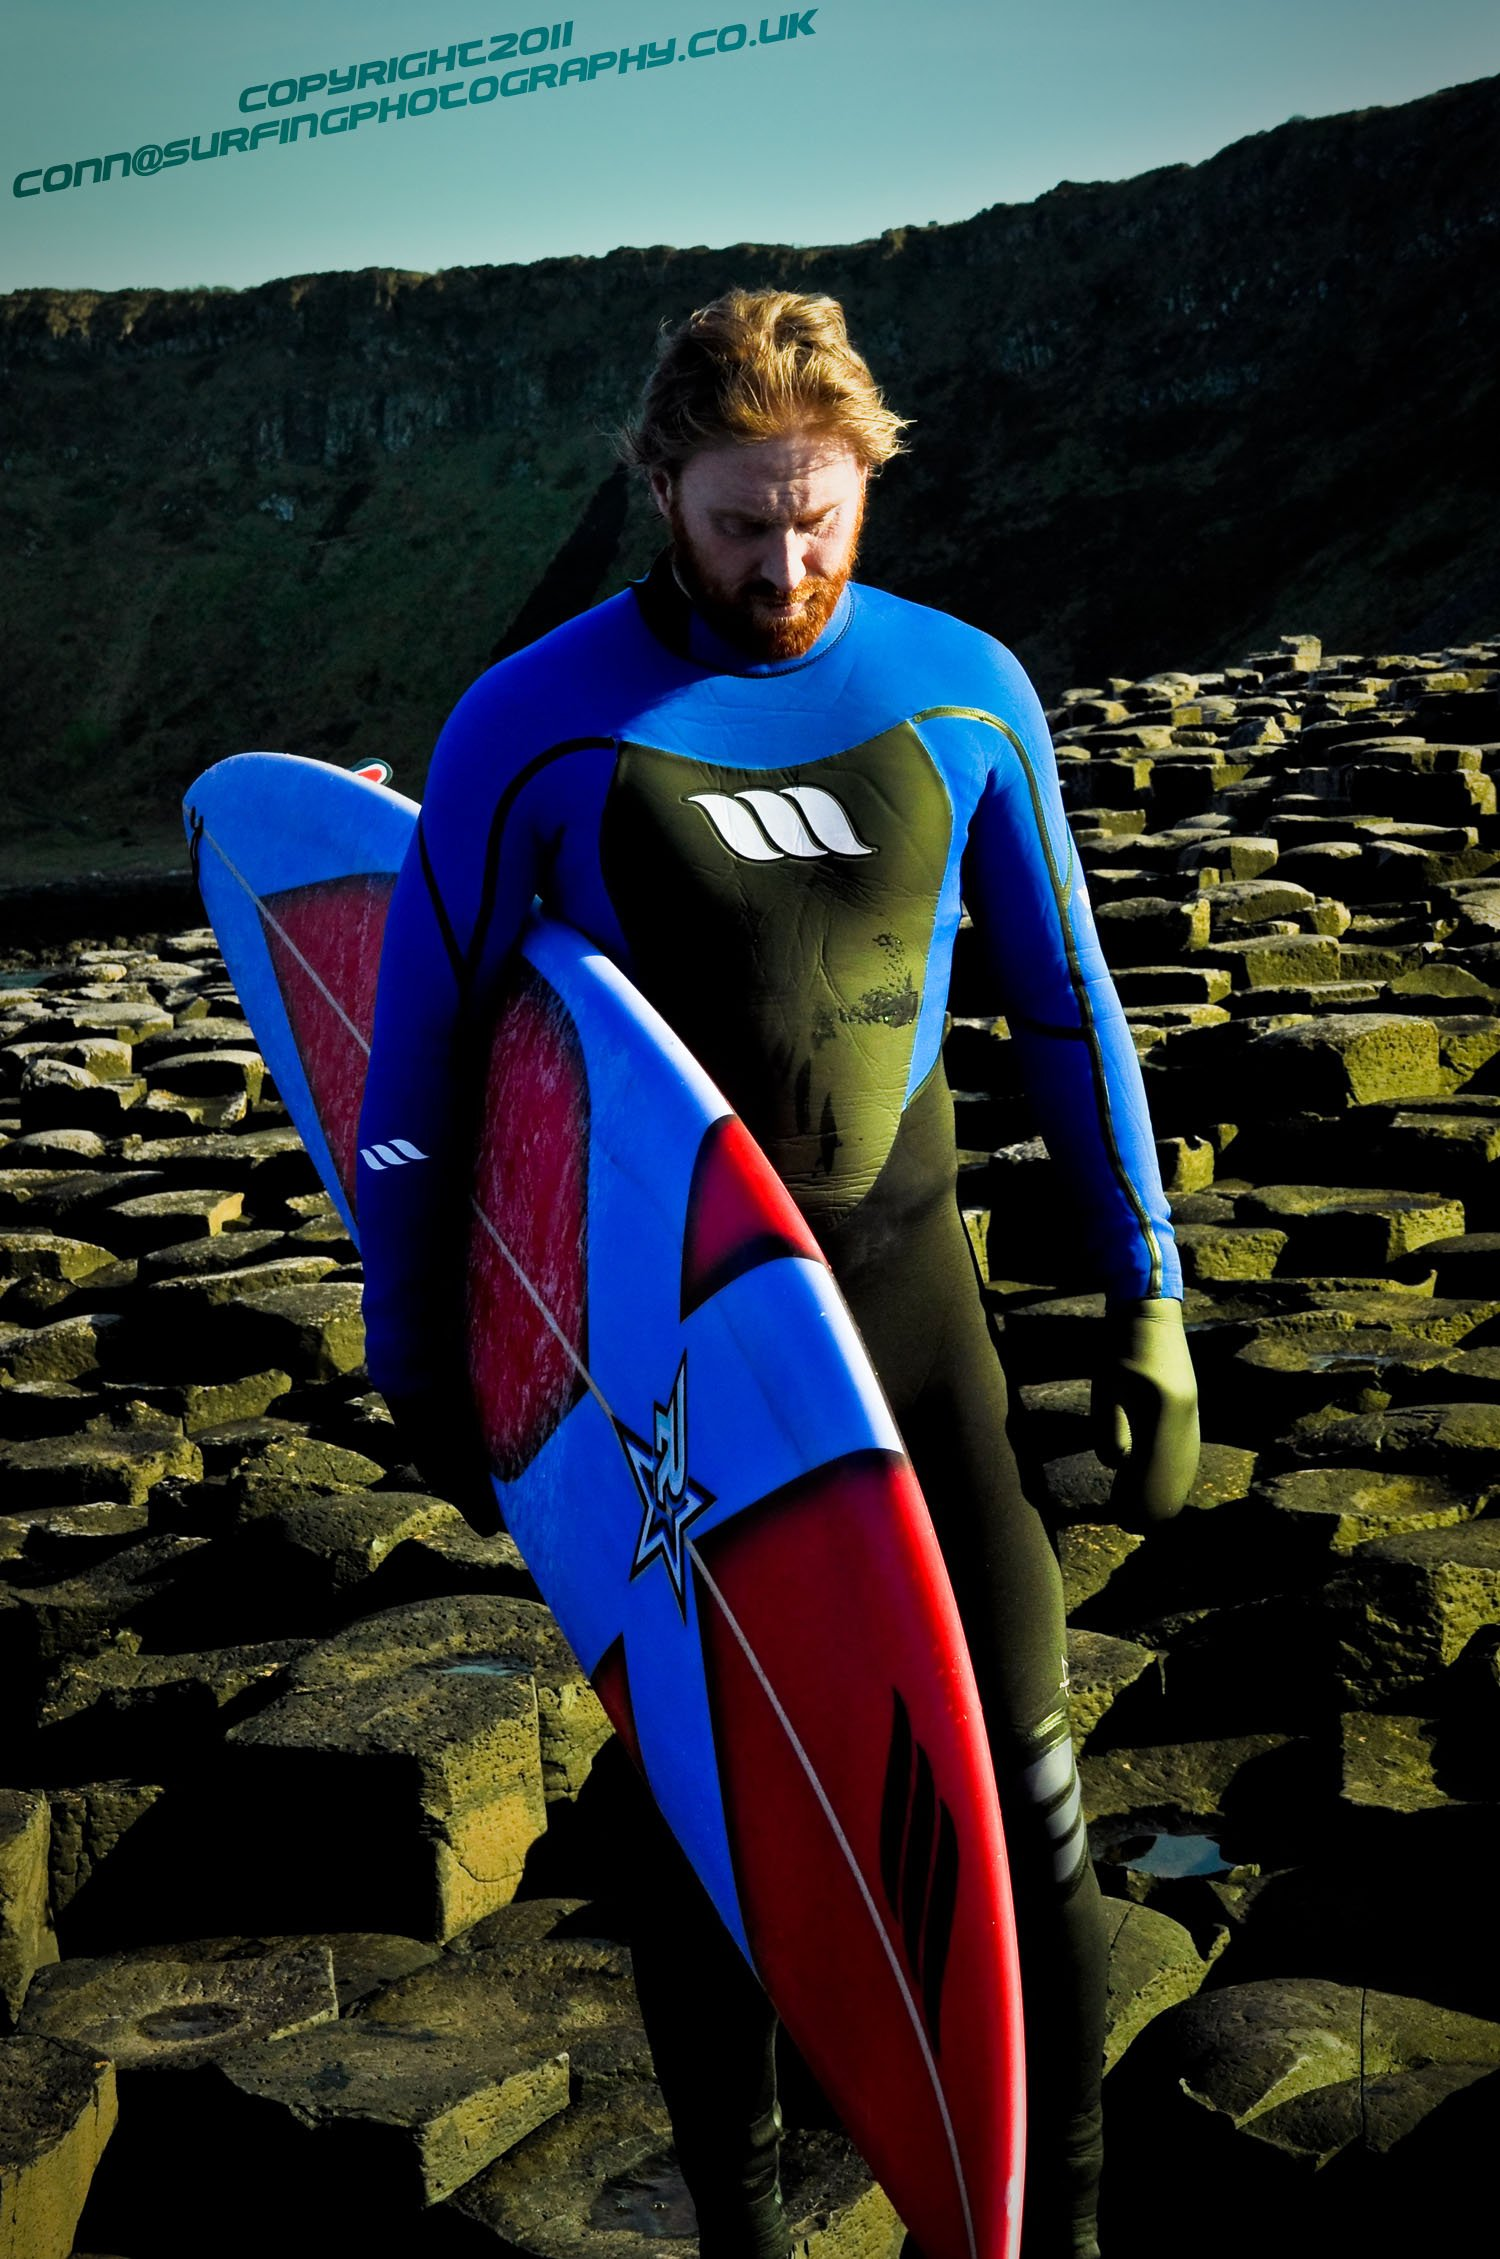 Al_Mennie_-_Giants_Causeway-3_copy